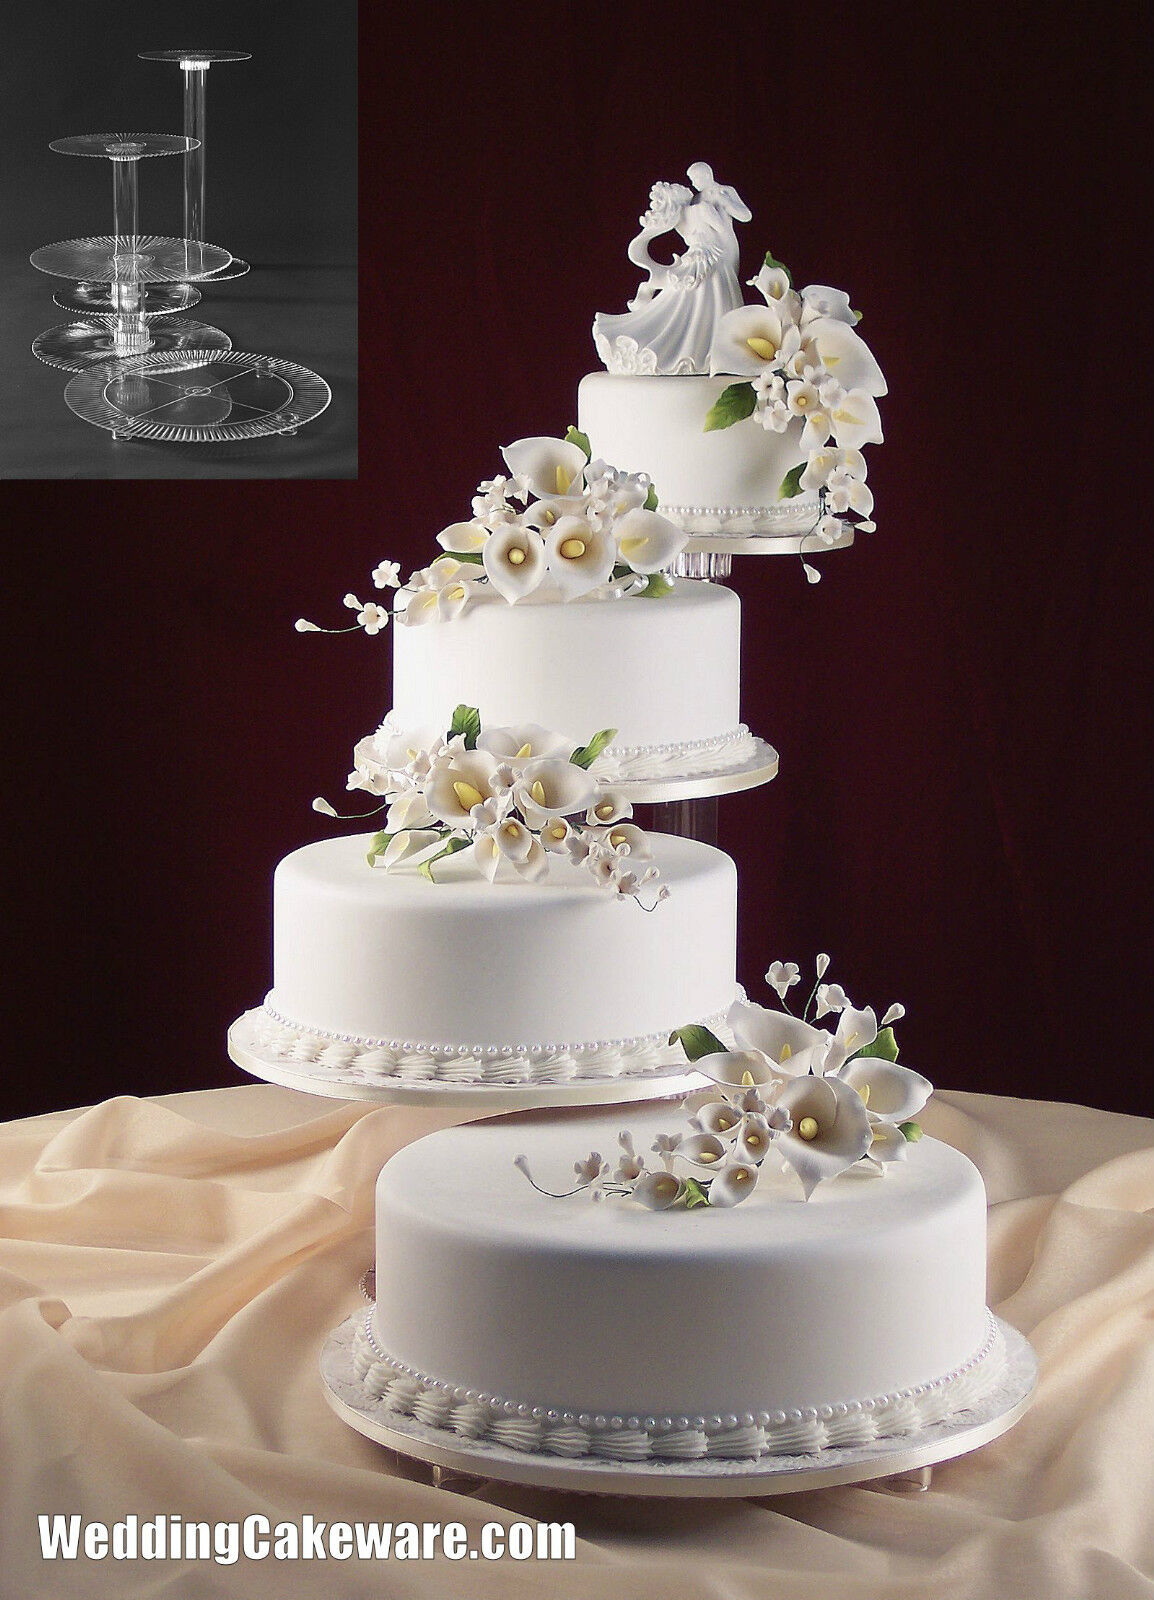 3 layer wedding cake stand wedding cakes stands bling wedding cake stand drum 18 10209